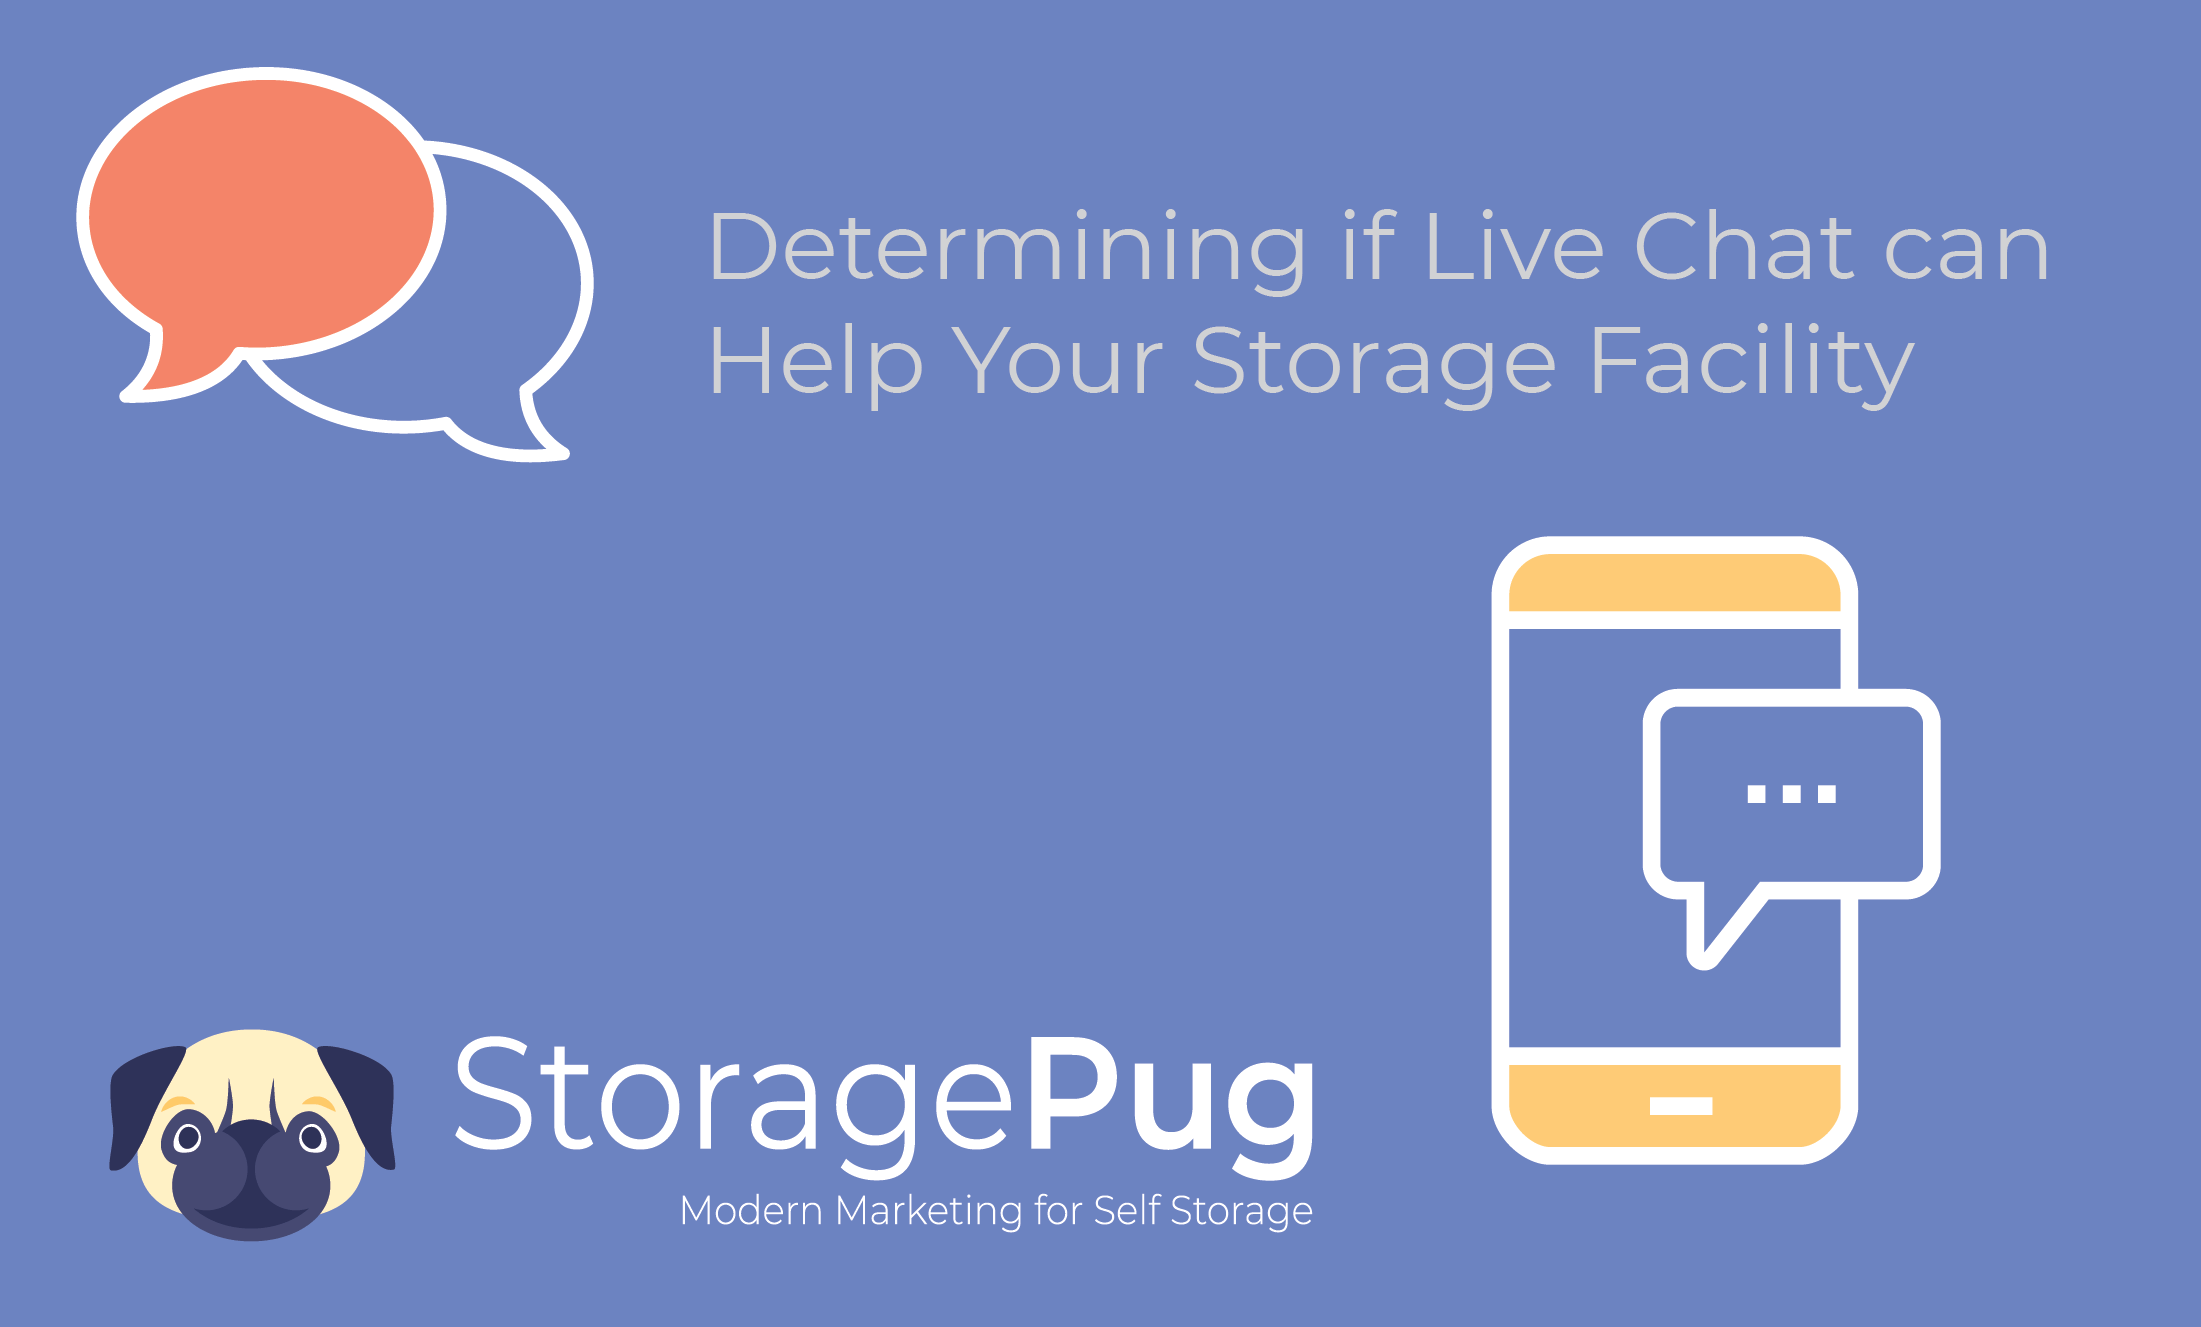 Determining if Live Chat can Help Your Storage Facility